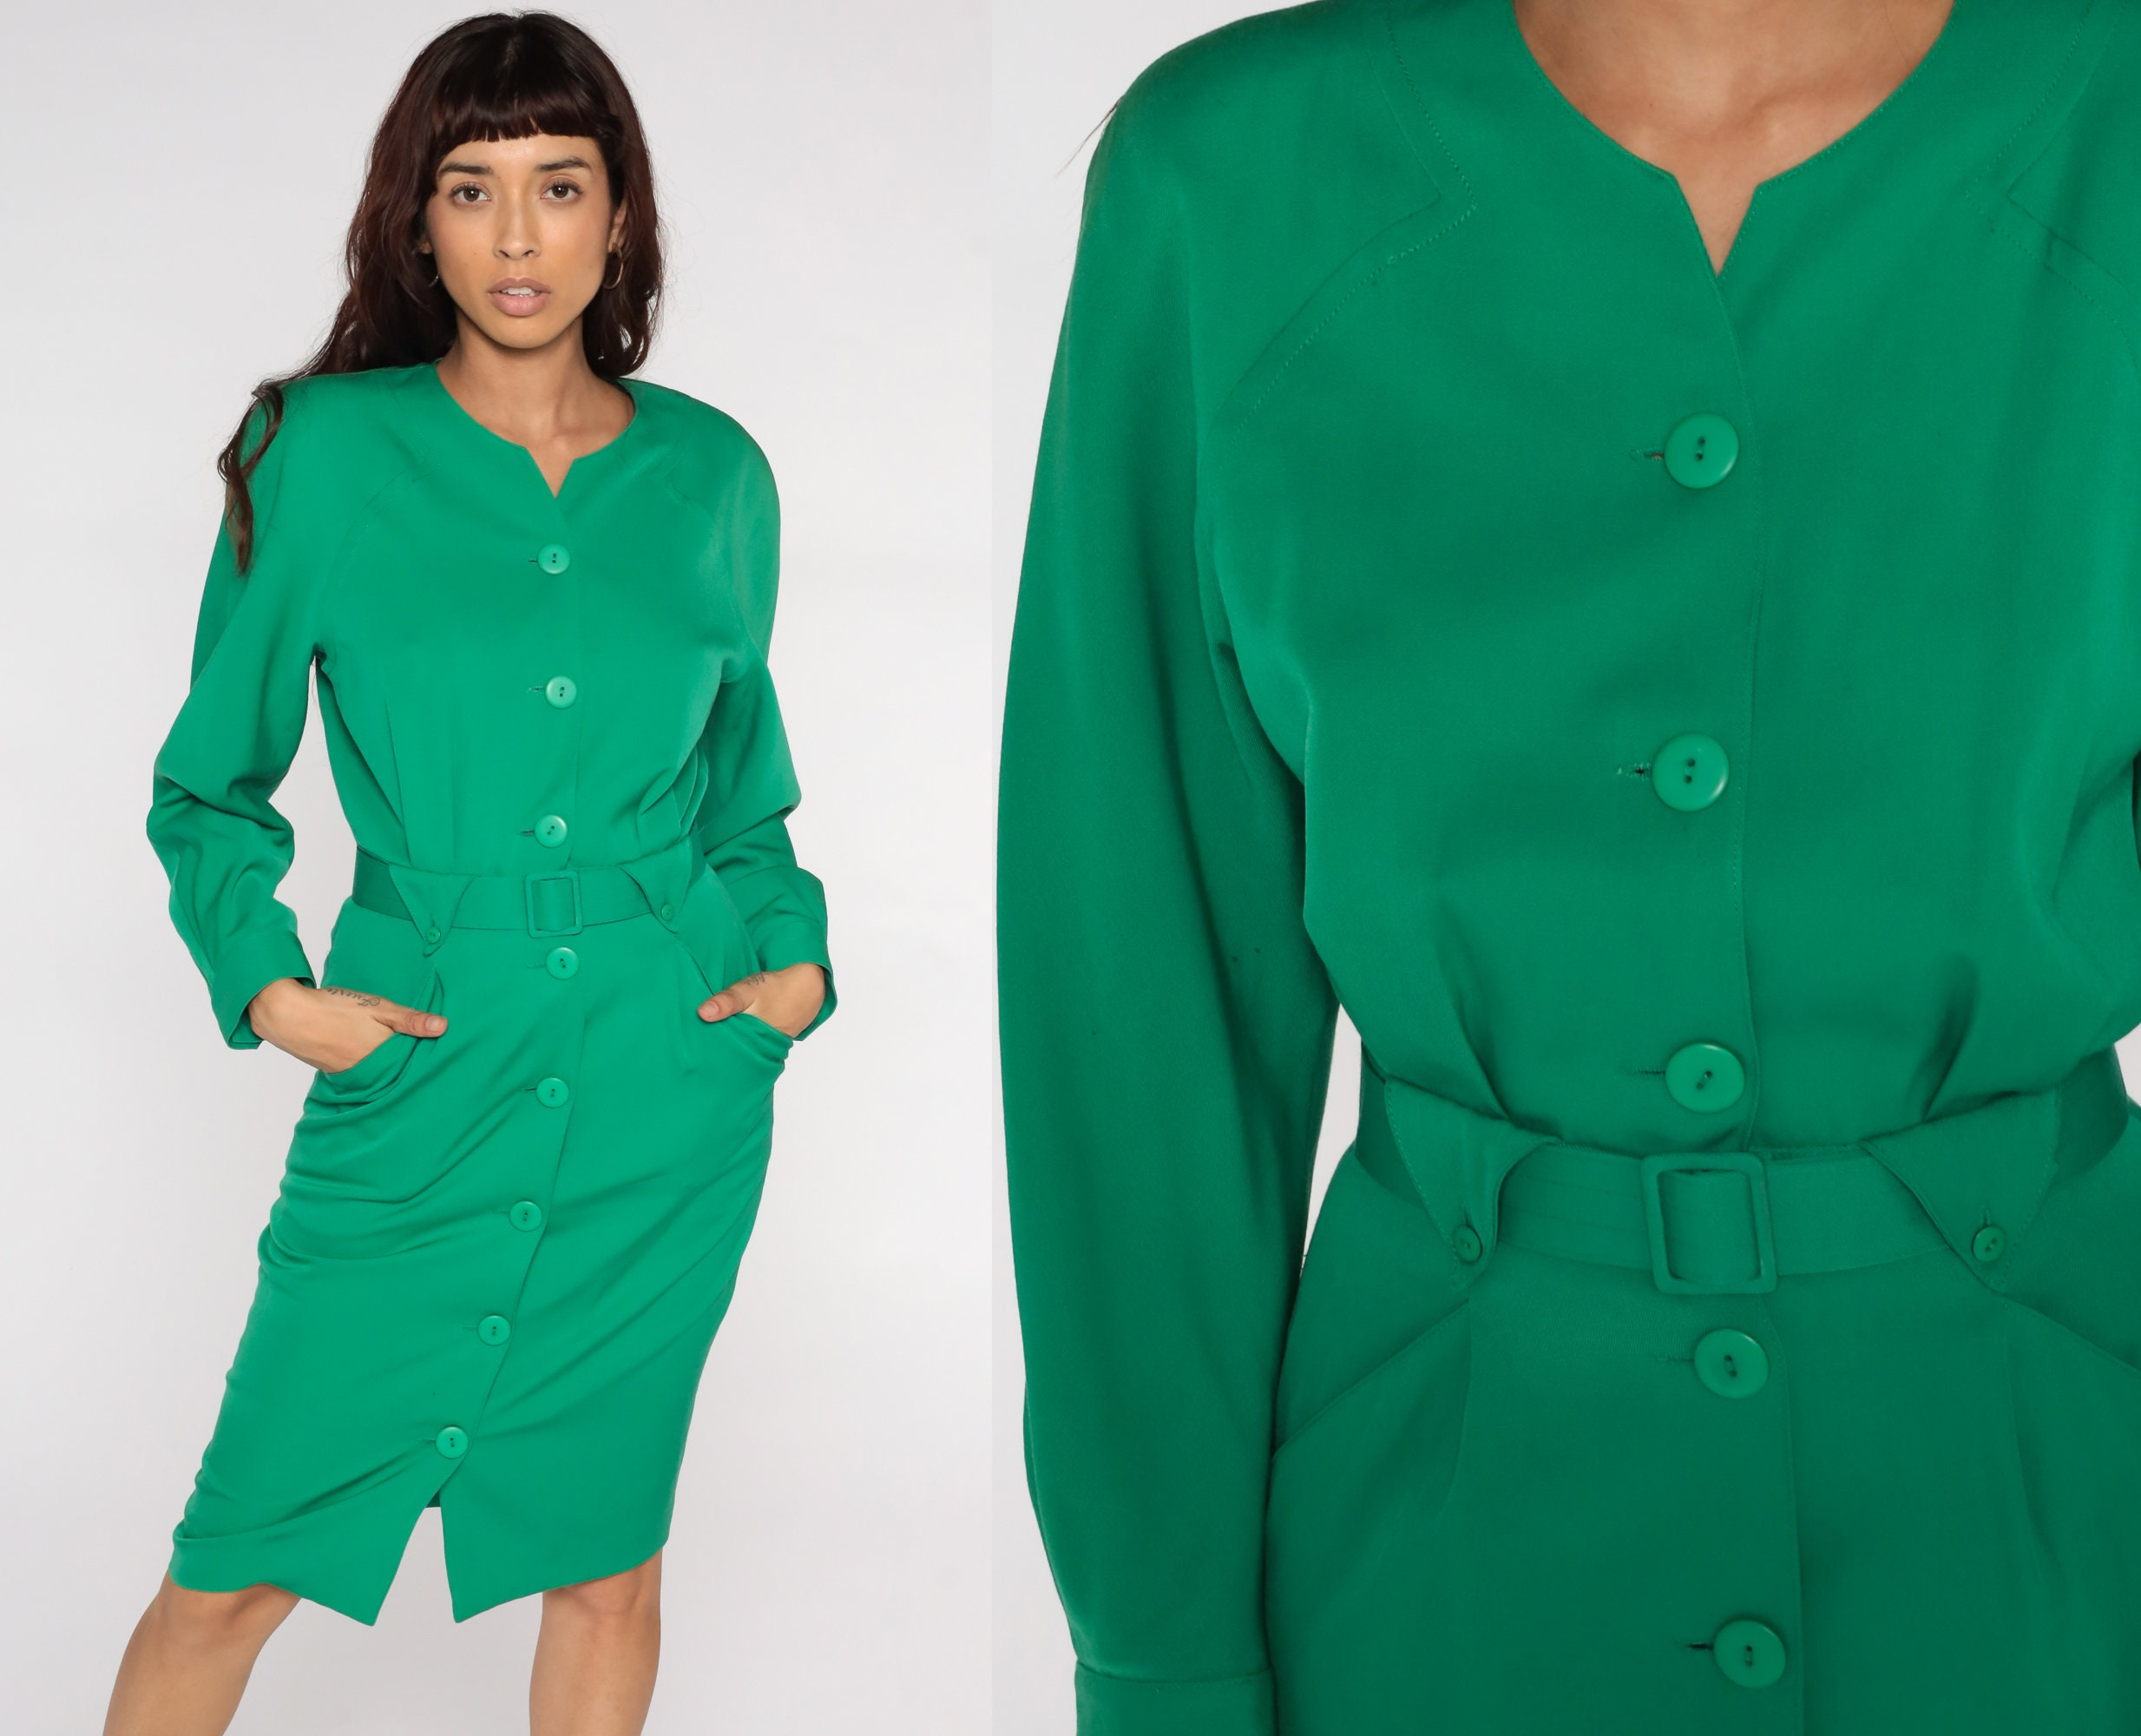 80s Dresses | Casual to Party Dresses Green Wool Dress Shirt Midi 80S Long Sleeve Secretary Shirtdress Pencil Wiggle Button Up High Waisted 1980S Vintage Plain Small S $49.00 AT vintagedancer.com